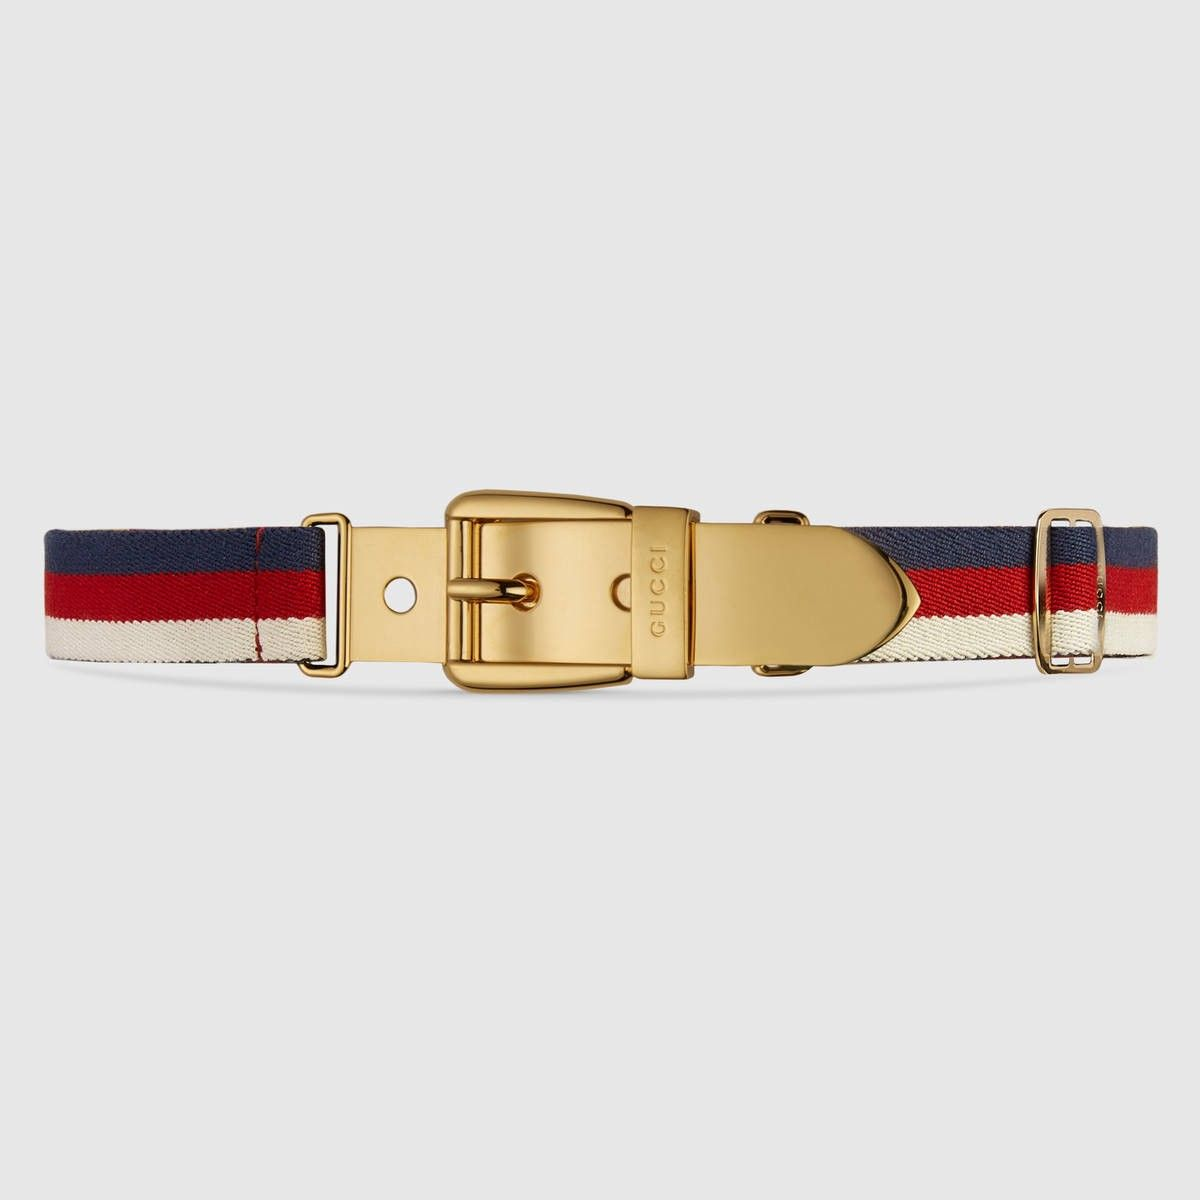 1288cc3c2910 GUCCI Web Belt With Square Buckle - Sylvie Web.  gucci  all